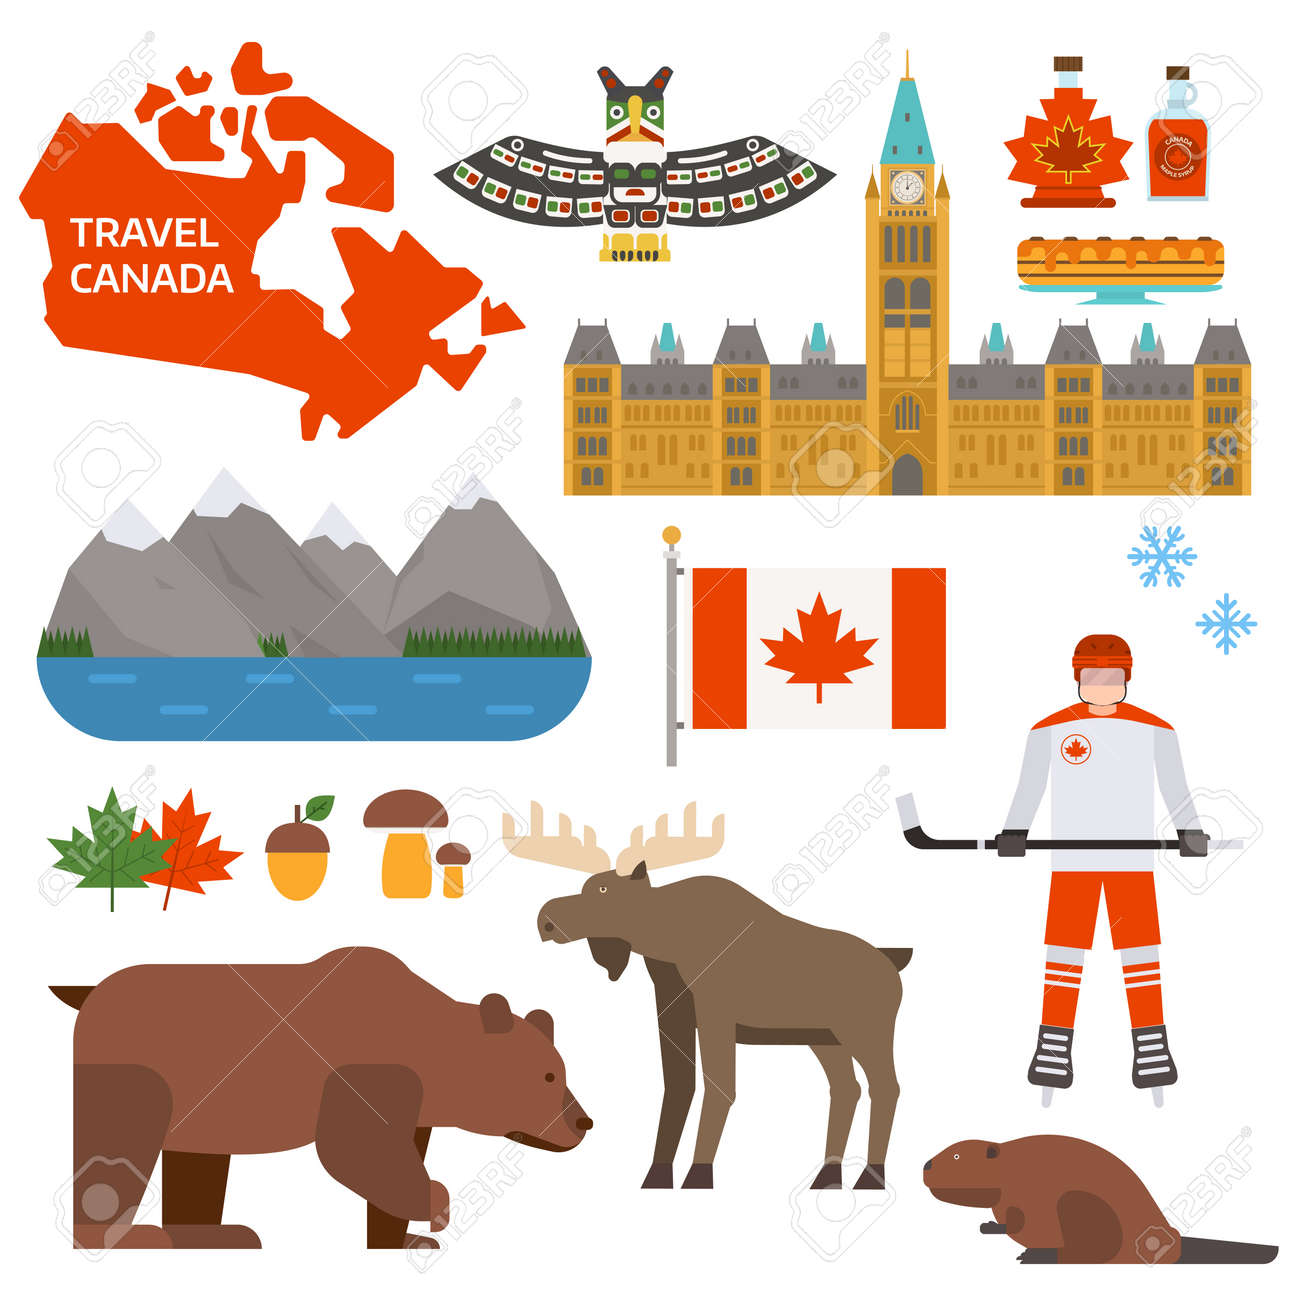 Travel canada traditional objects and maple canada symbols vector travel canada traditional objects and maple canada symbols vector canada symbols and national travel culture biocorpaavc